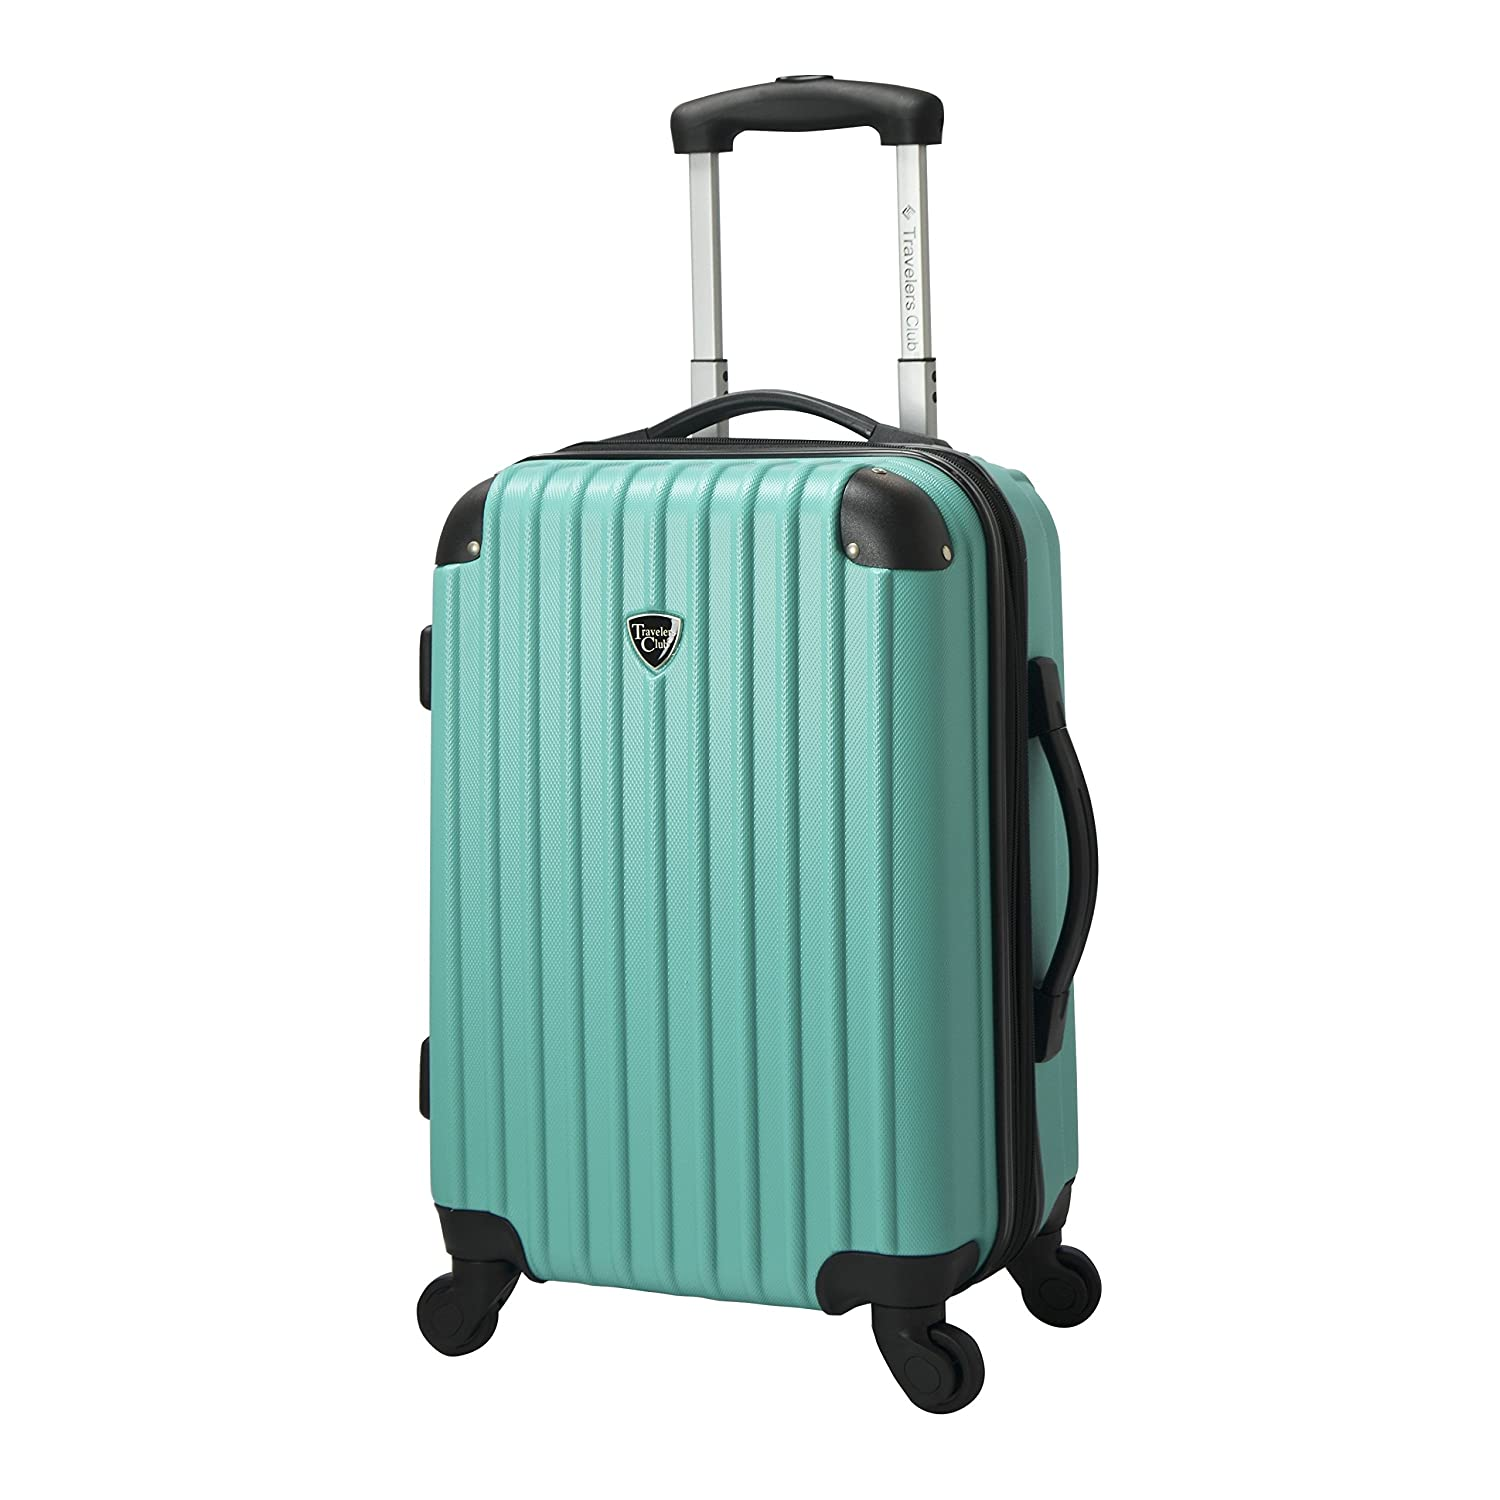 Travelers Club Luggage Madison 20 Inch Hardside Expandable Spinner Carry On Luggage, Teal HS-20721-CRM